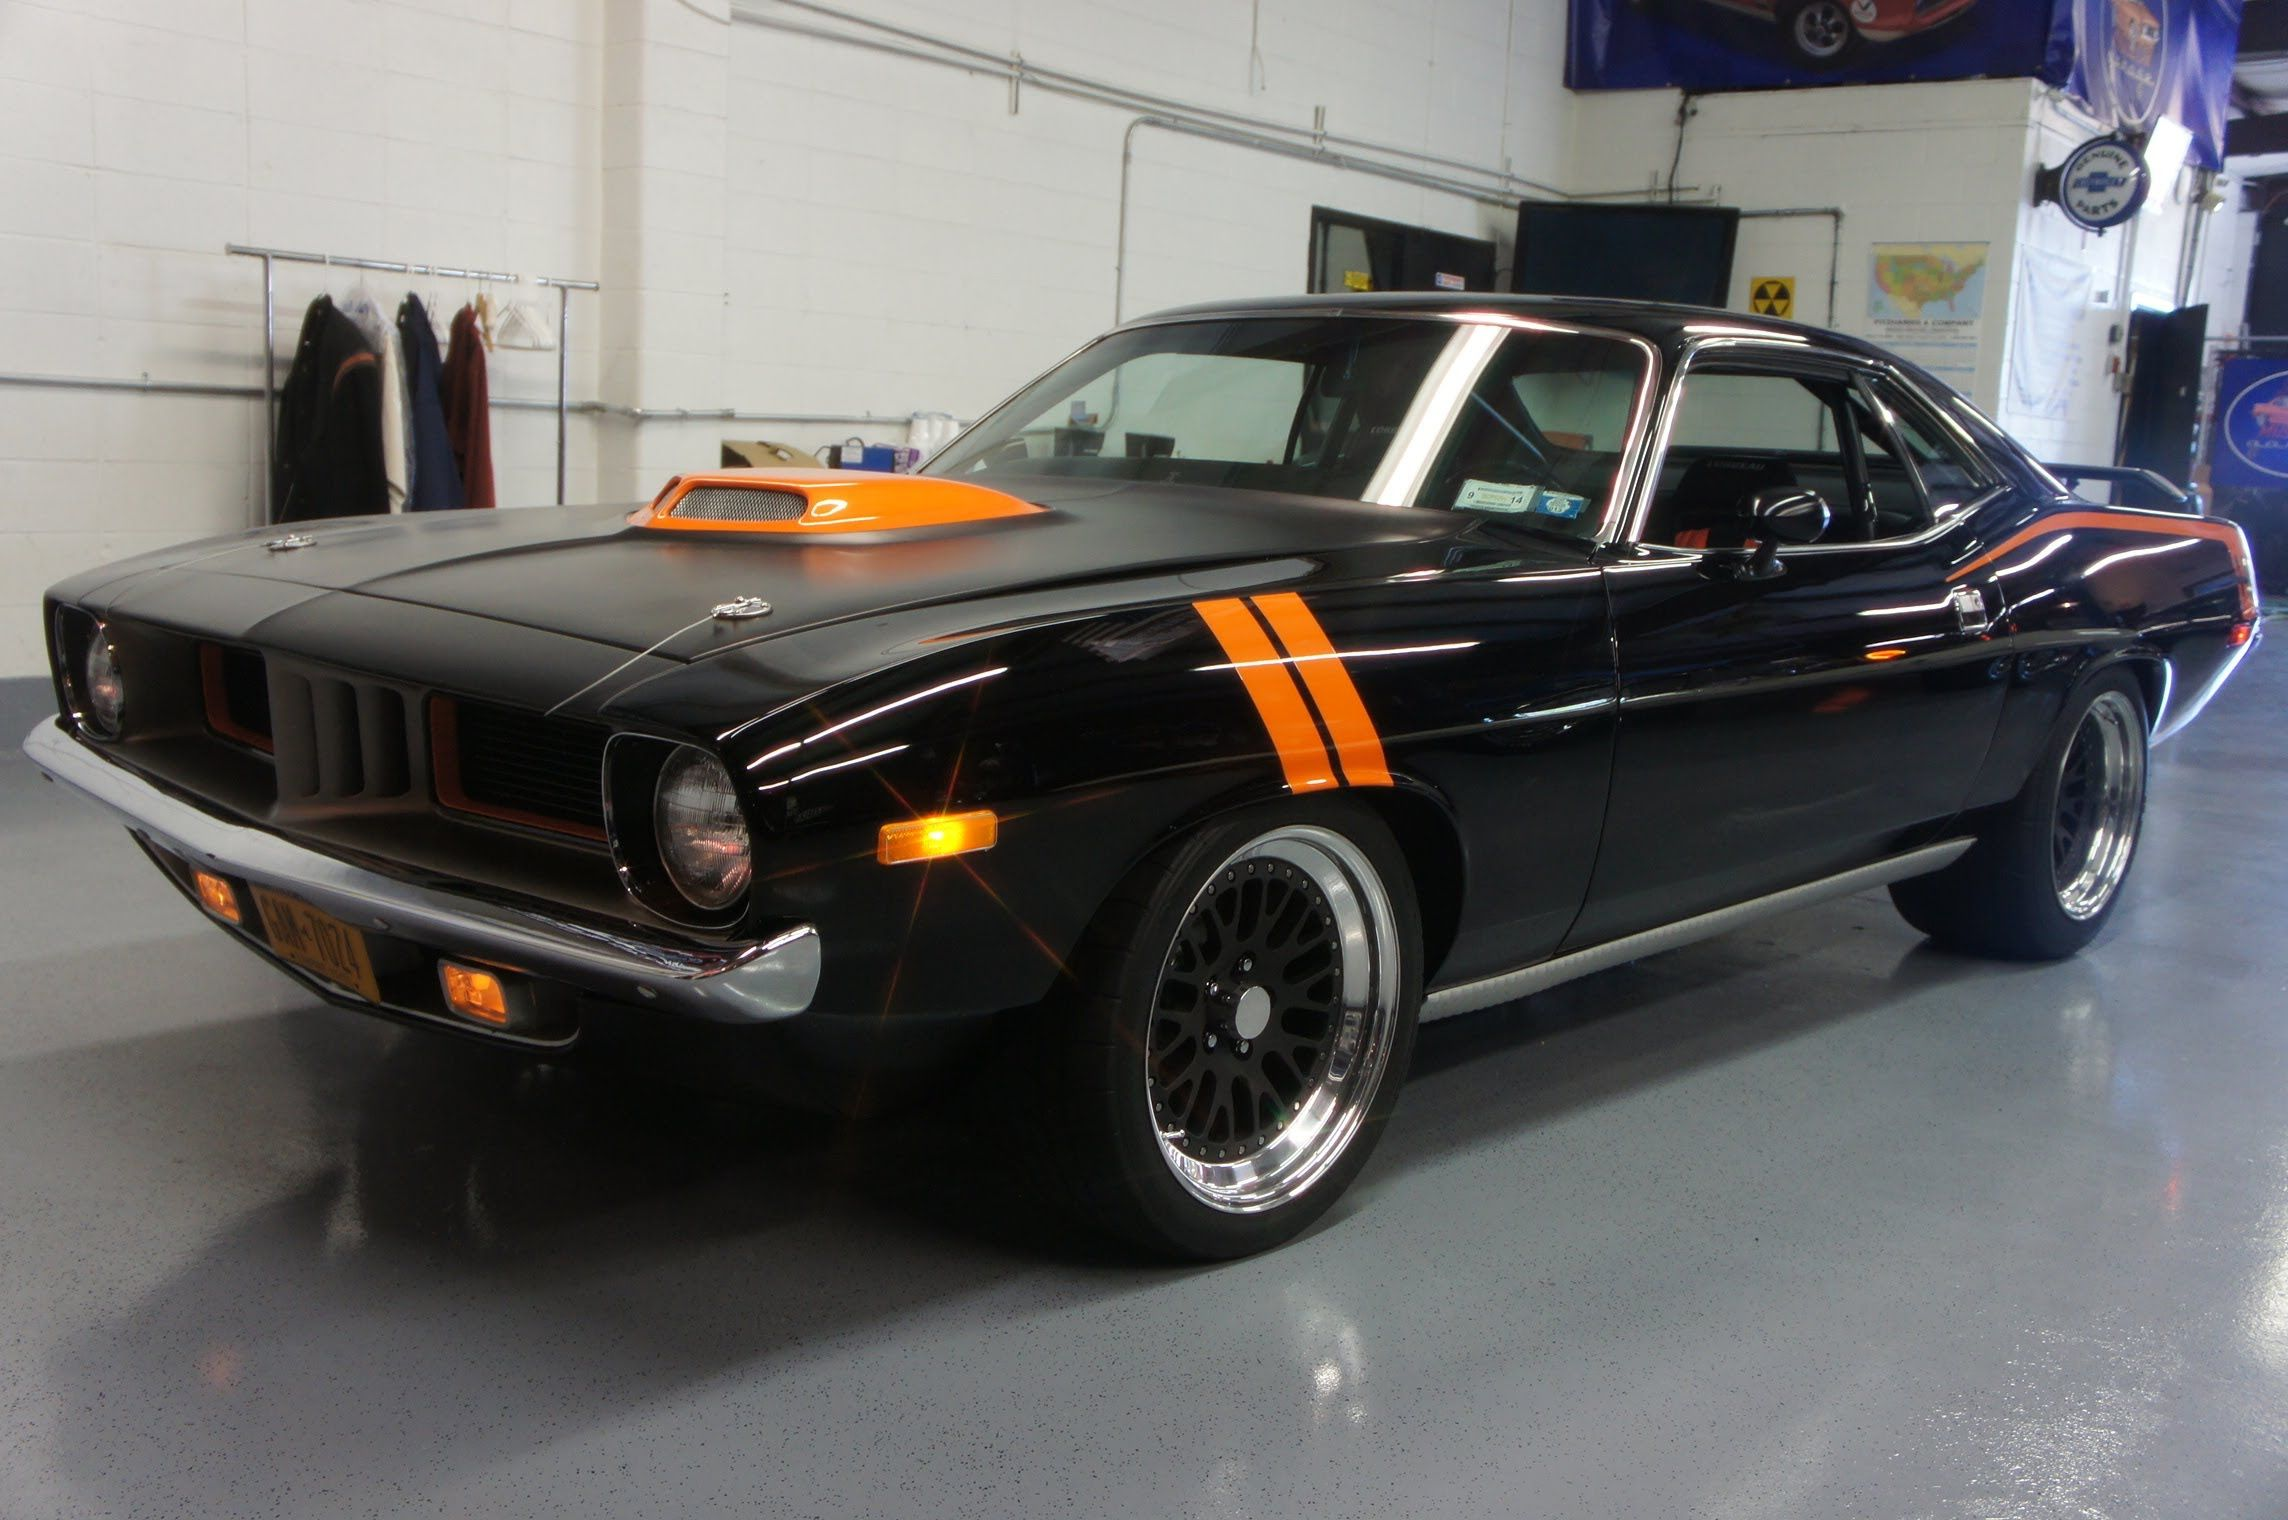 1973 plymouth barracuda pro touring resto mod for sale nascar 462 motor